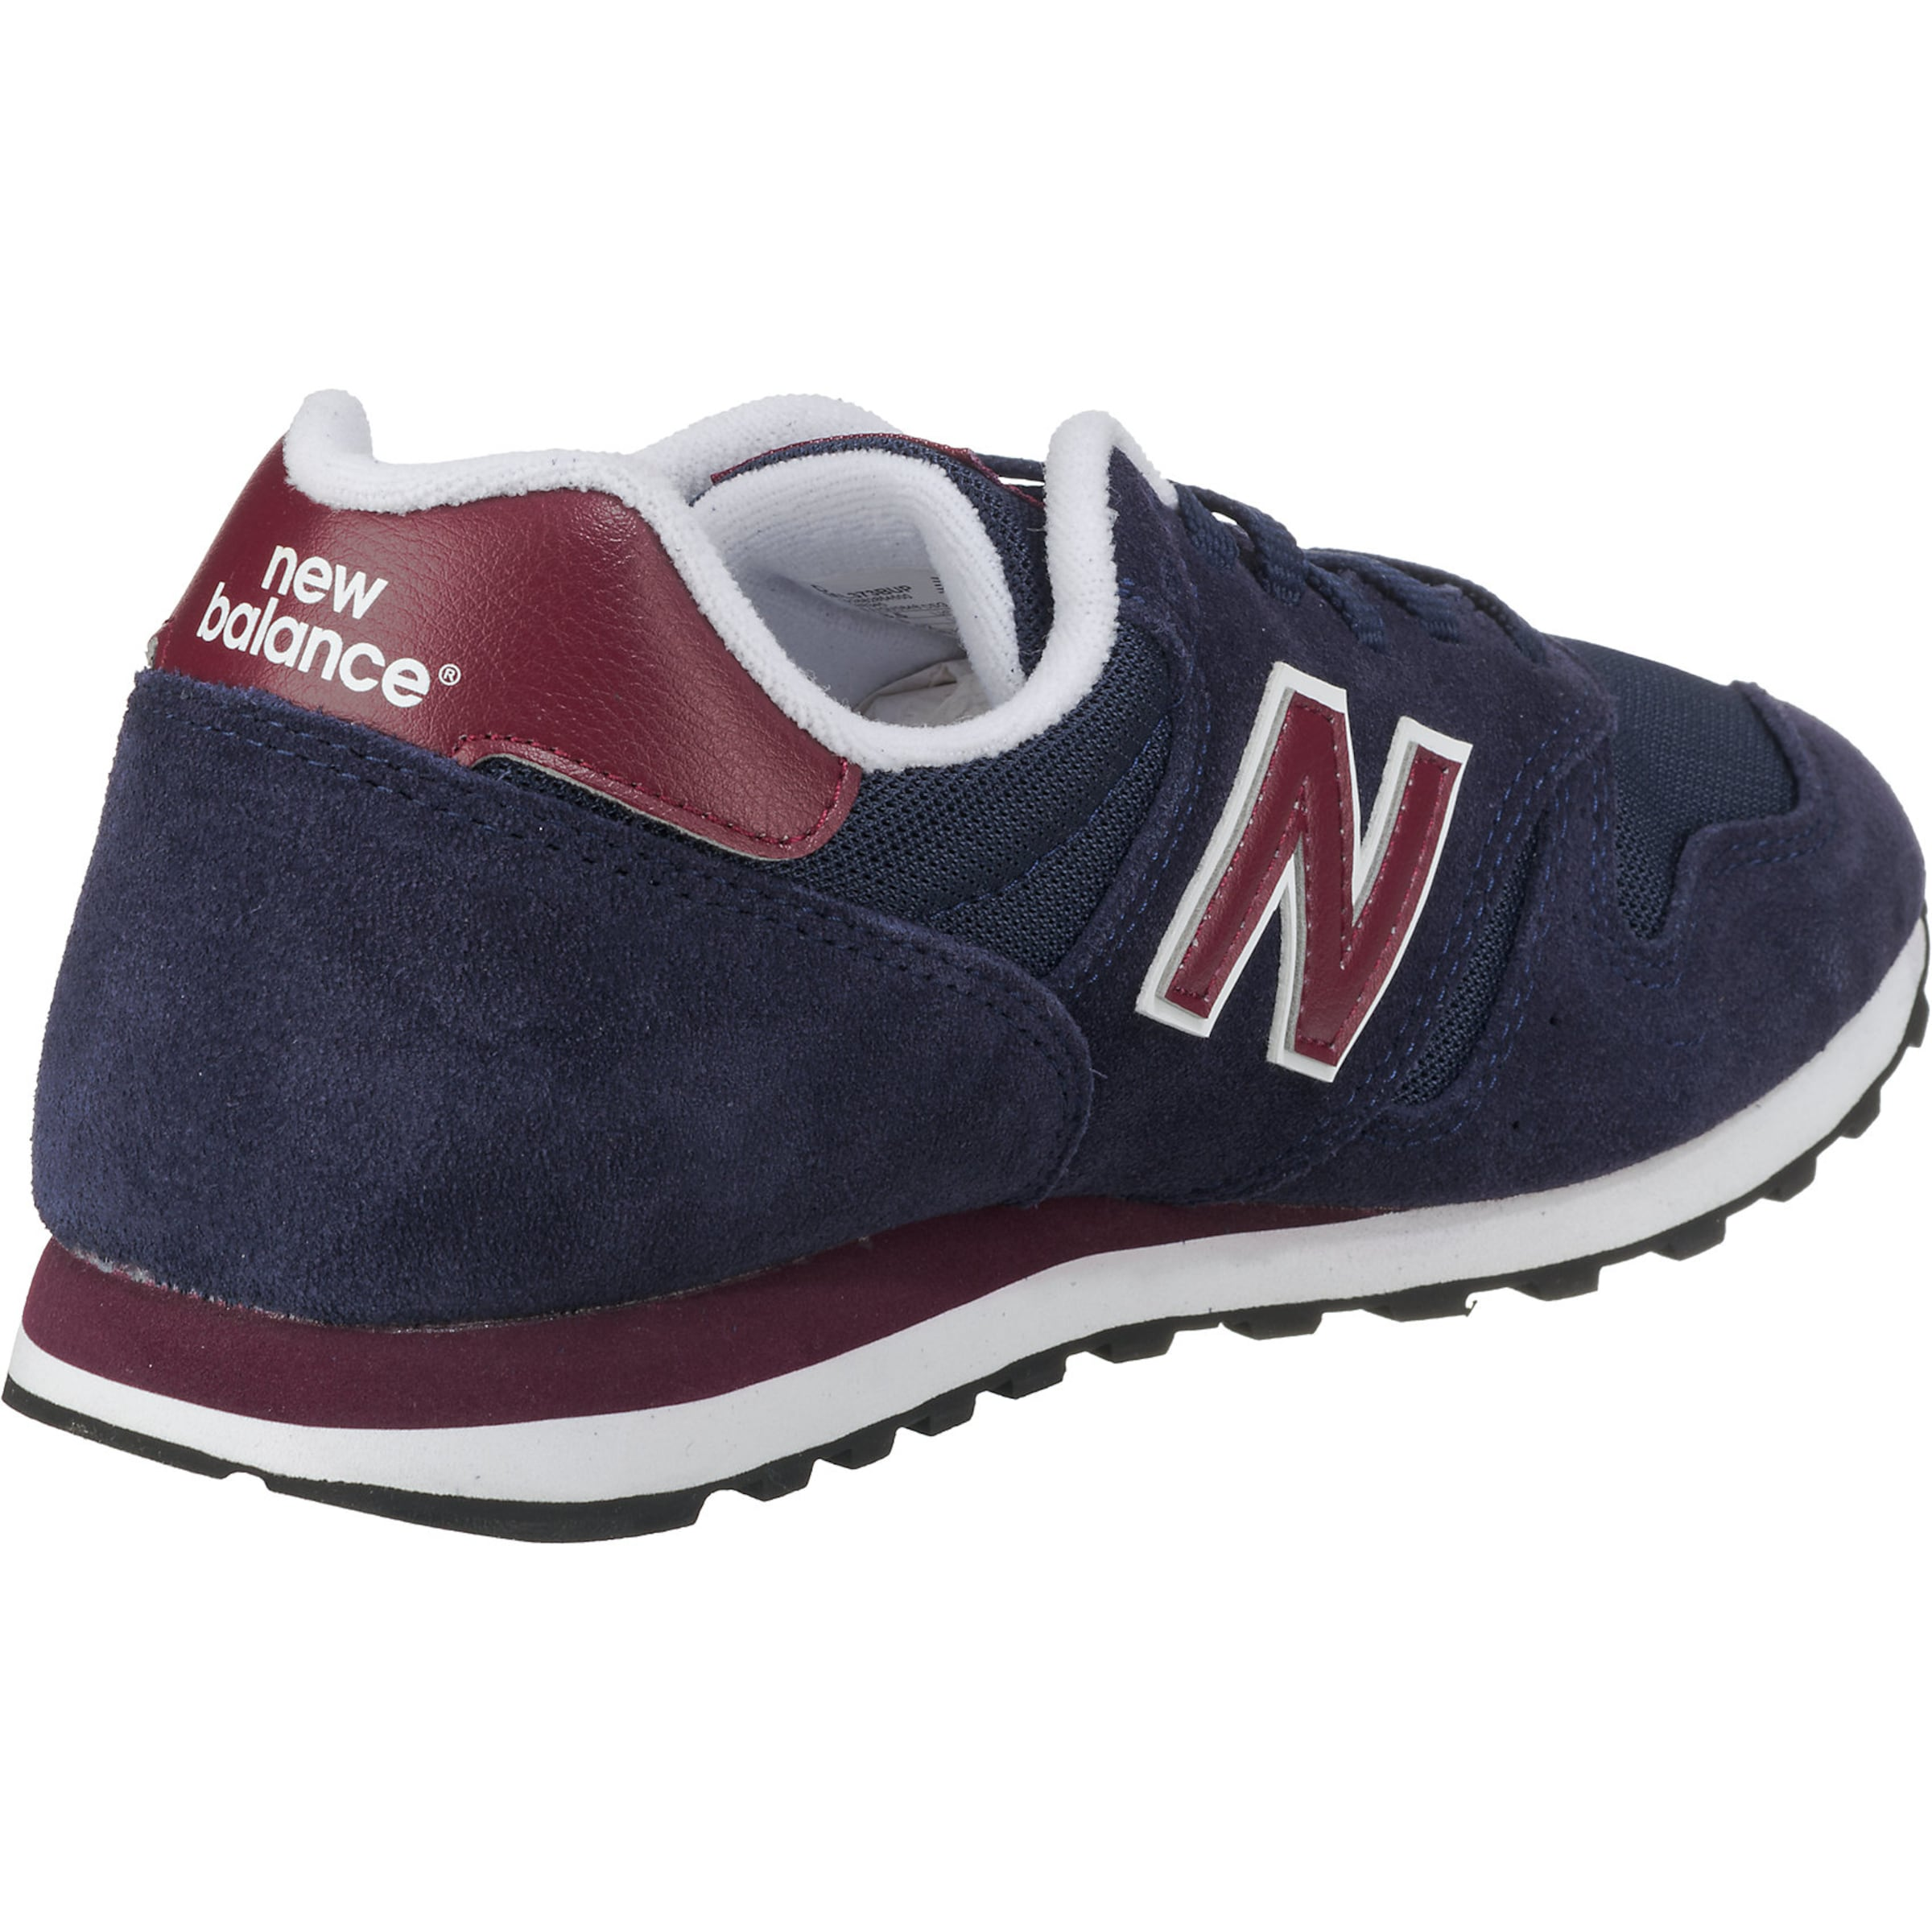 373' Balance NavyBordeaux Weiß Sneaker In 'ml New vPnym8NO0w